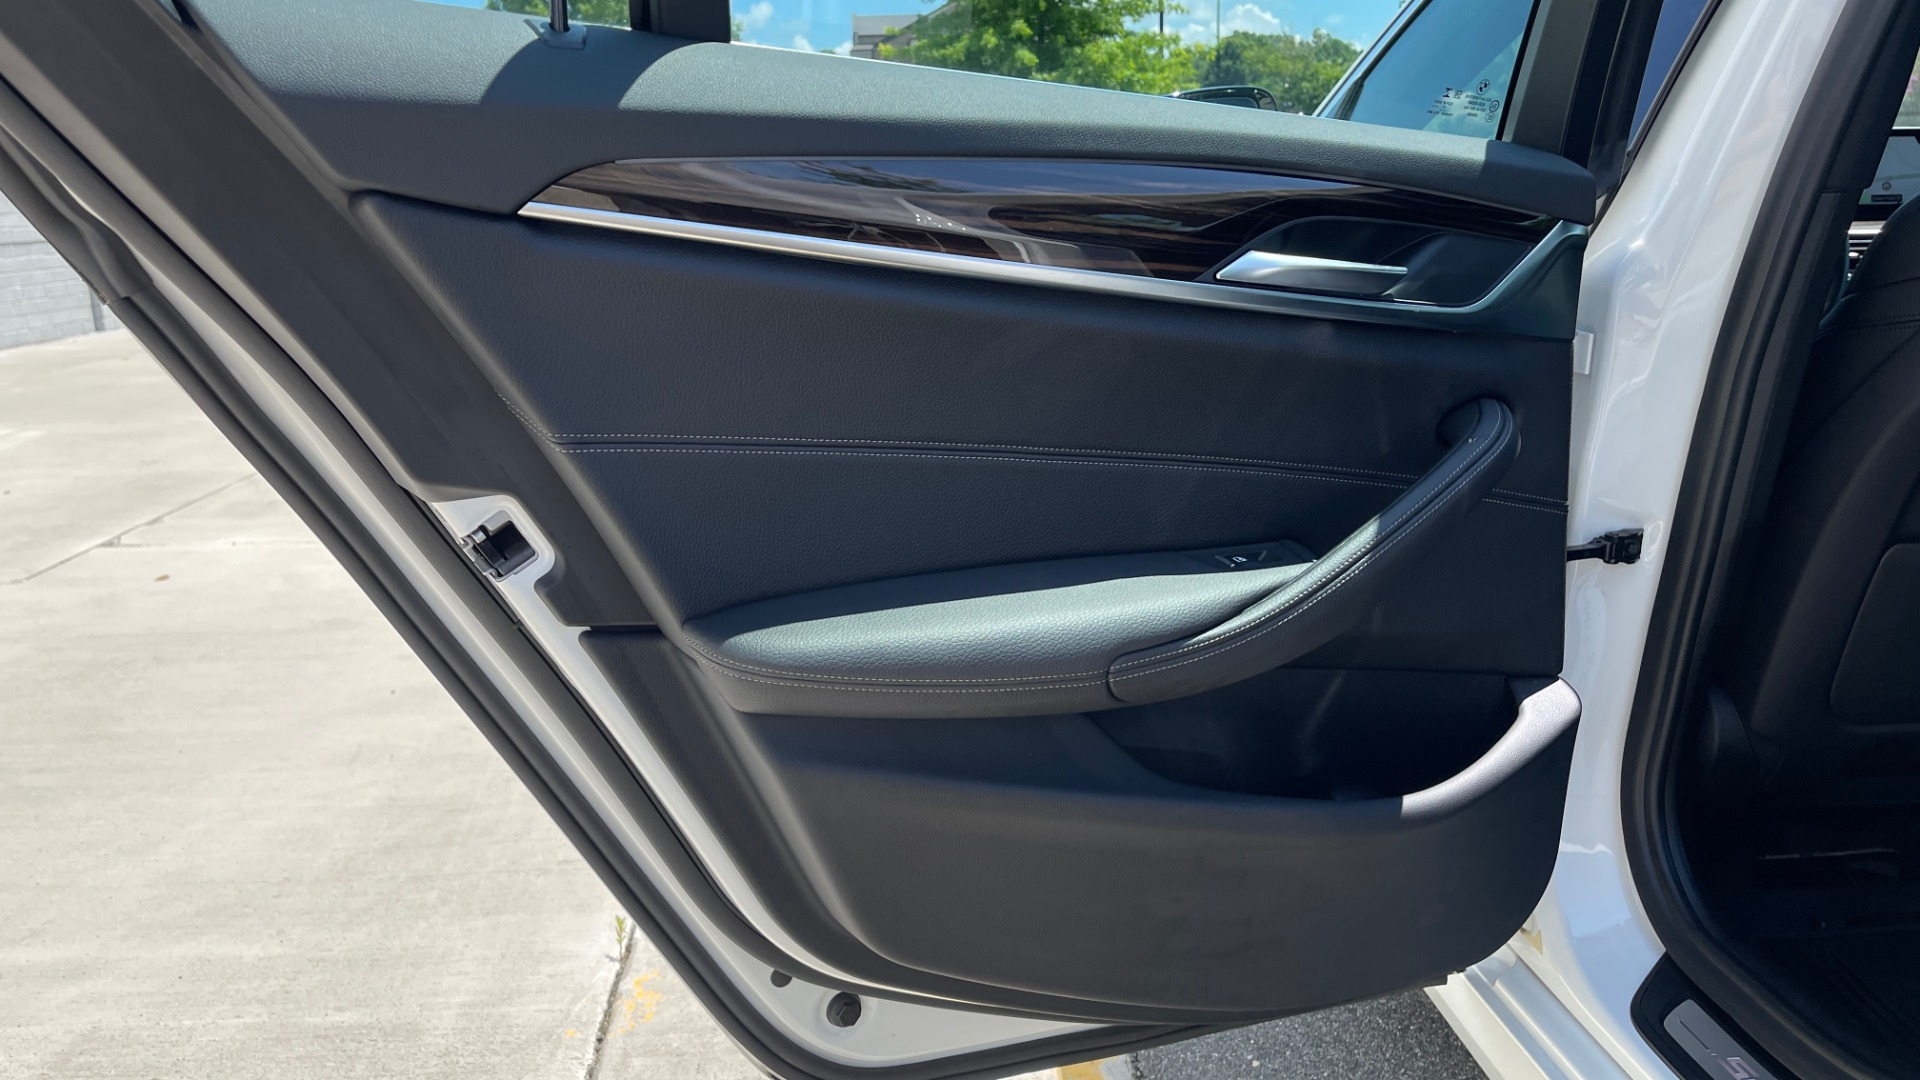 Used 2018 BMW 5 SERIES 540IXDRIVE PREMIUM / PARK ASSIST / KEYLESS ENTRY / SUNROOF / REARVIEW for sale $42,995 at Formula Imports in Charlotte NC 28227 53